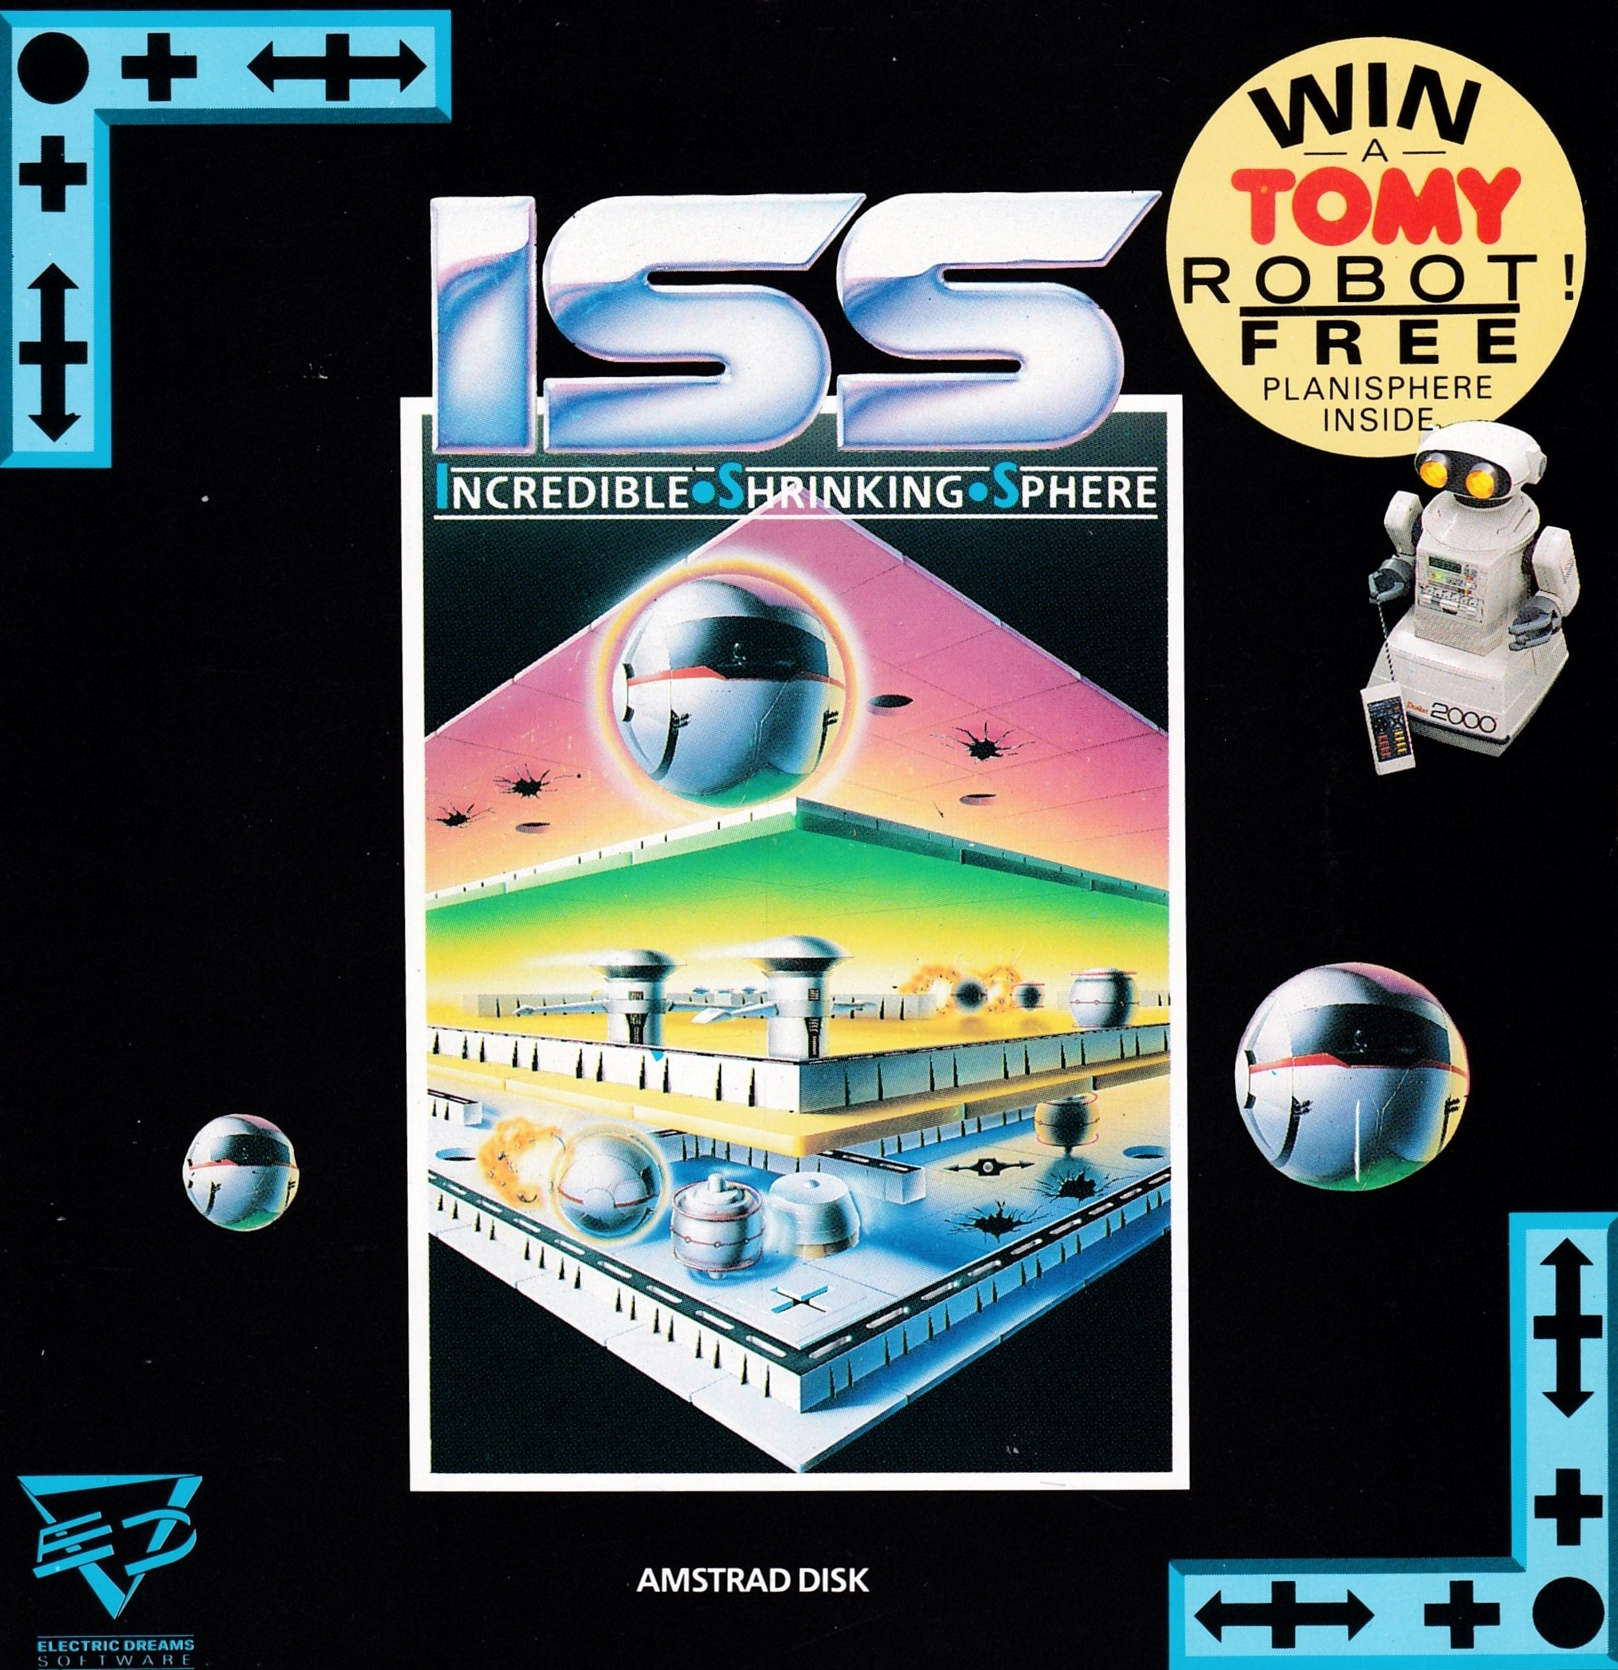 cover of the Amstrad CPC game I.S.S. - Incredible Shrinking Sphere  by GameBase CPC